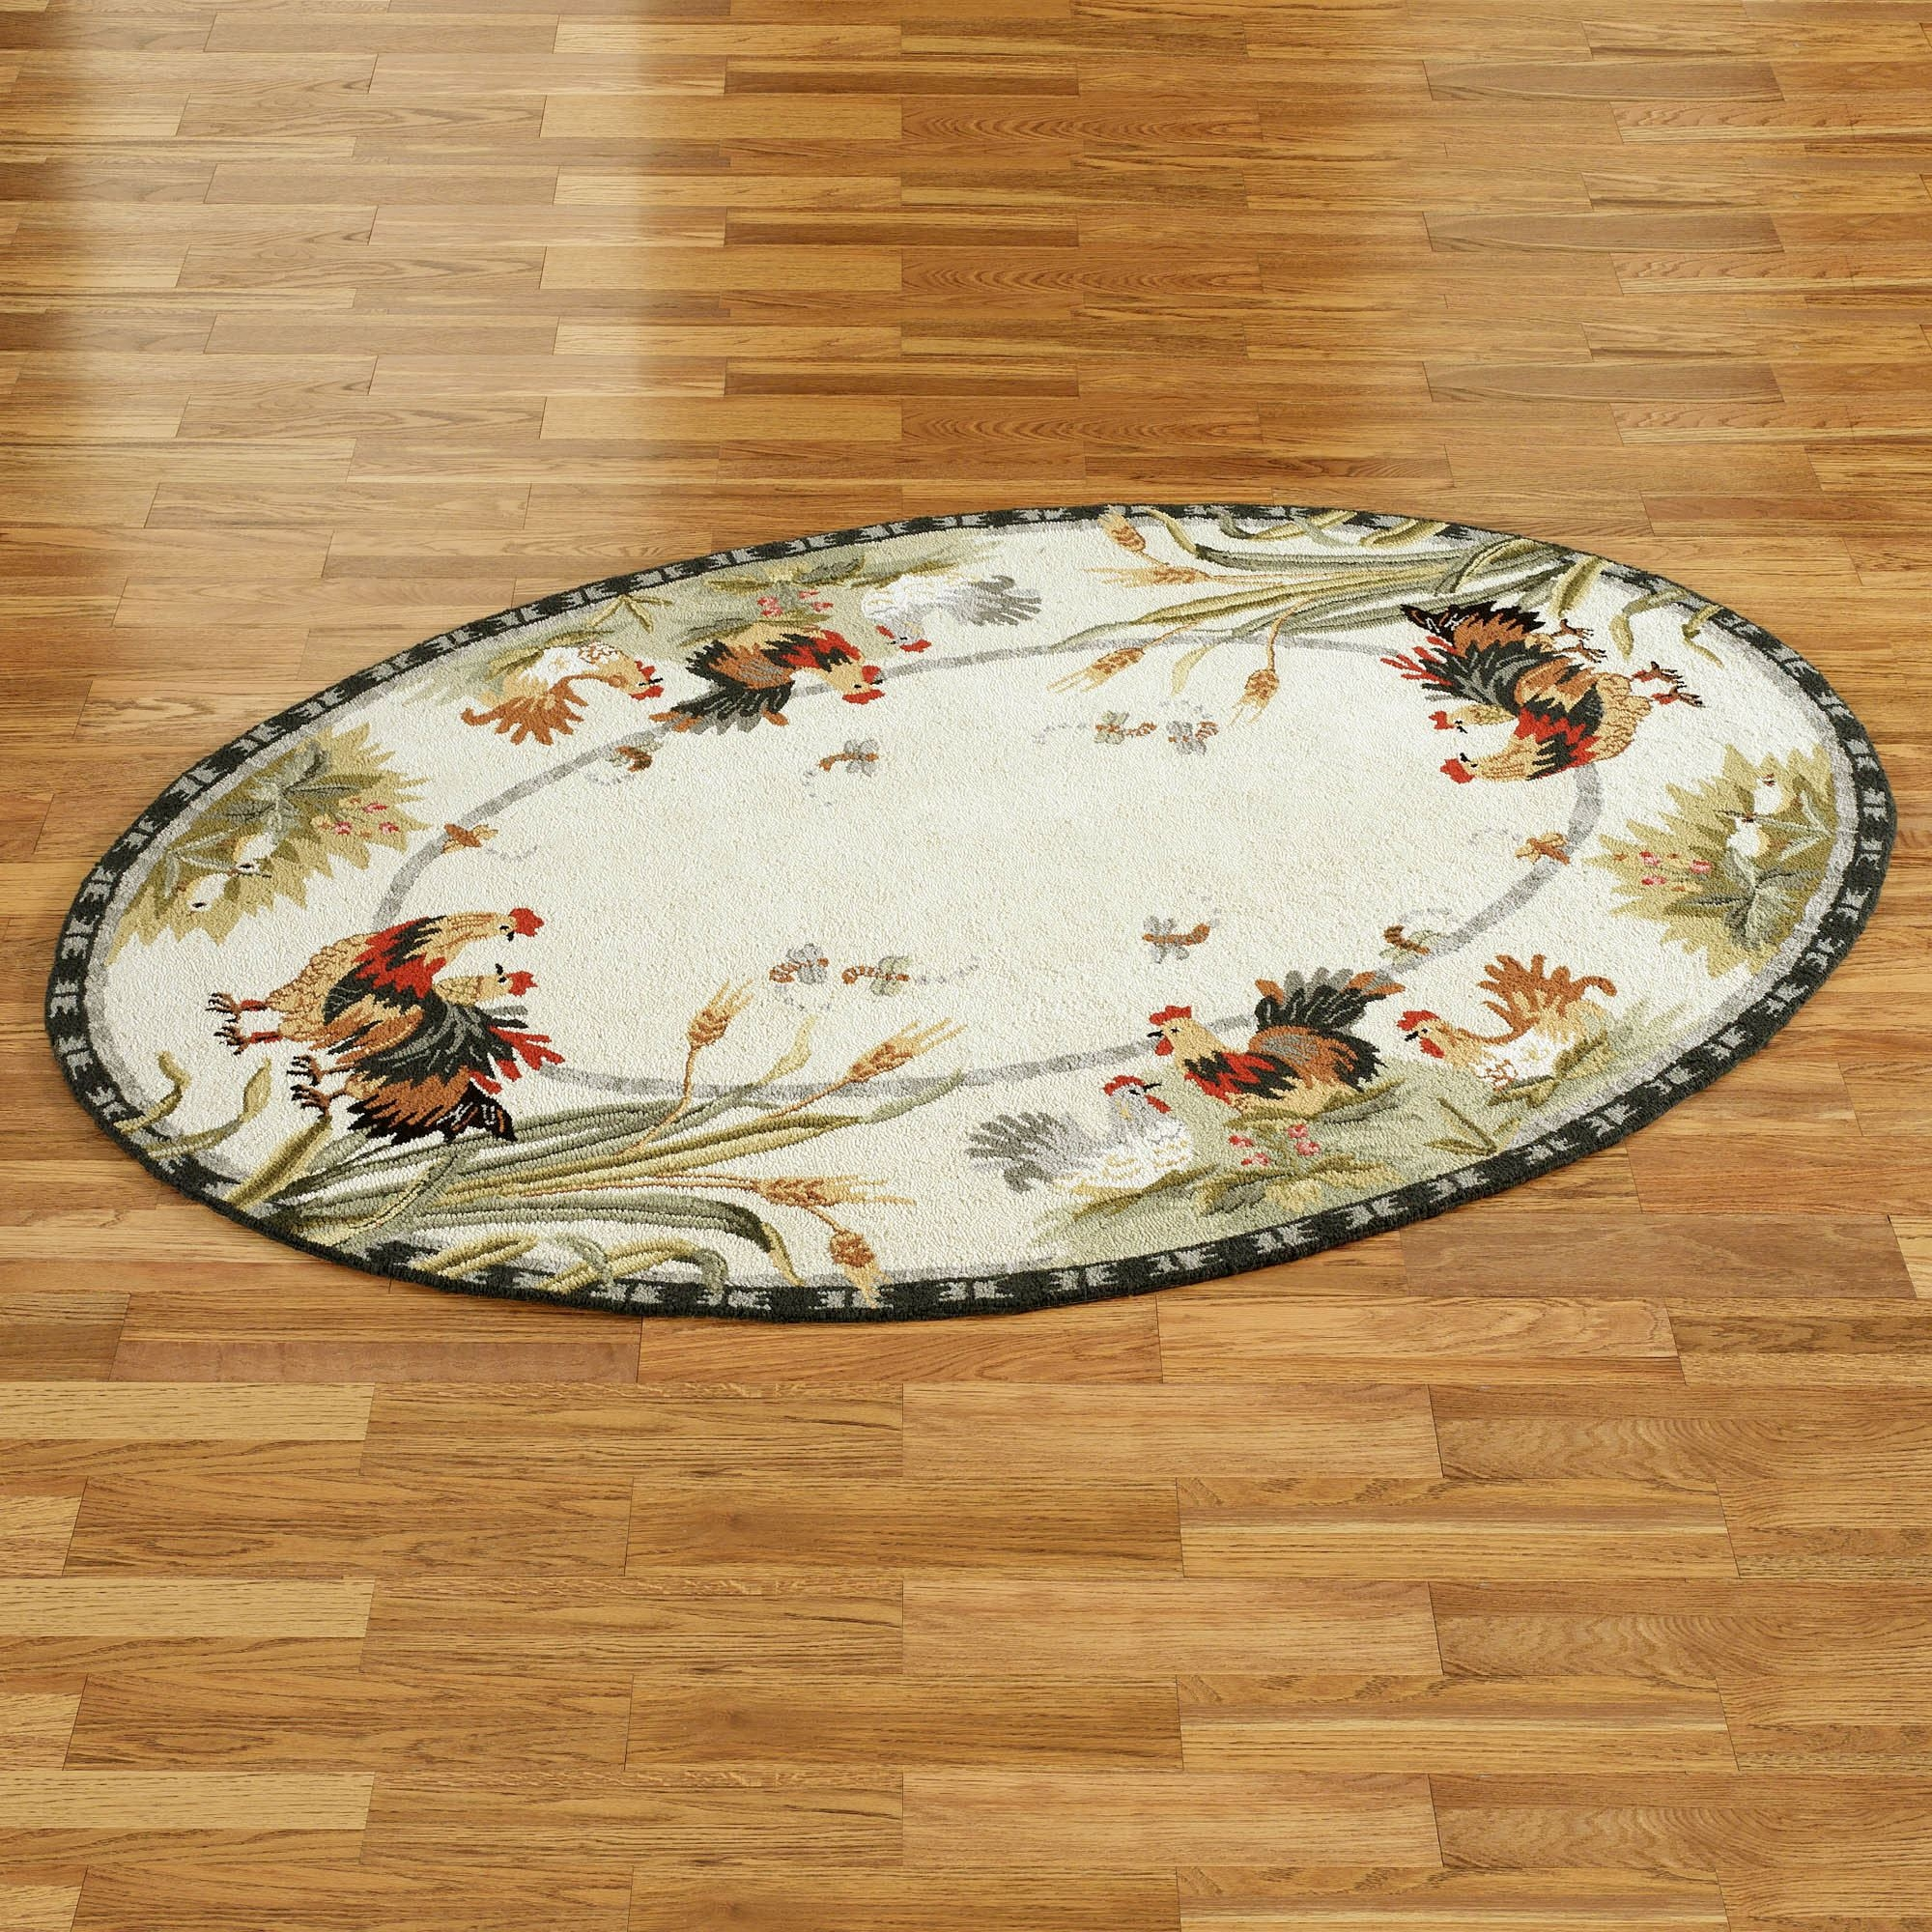 Top 15 Oval Rugs